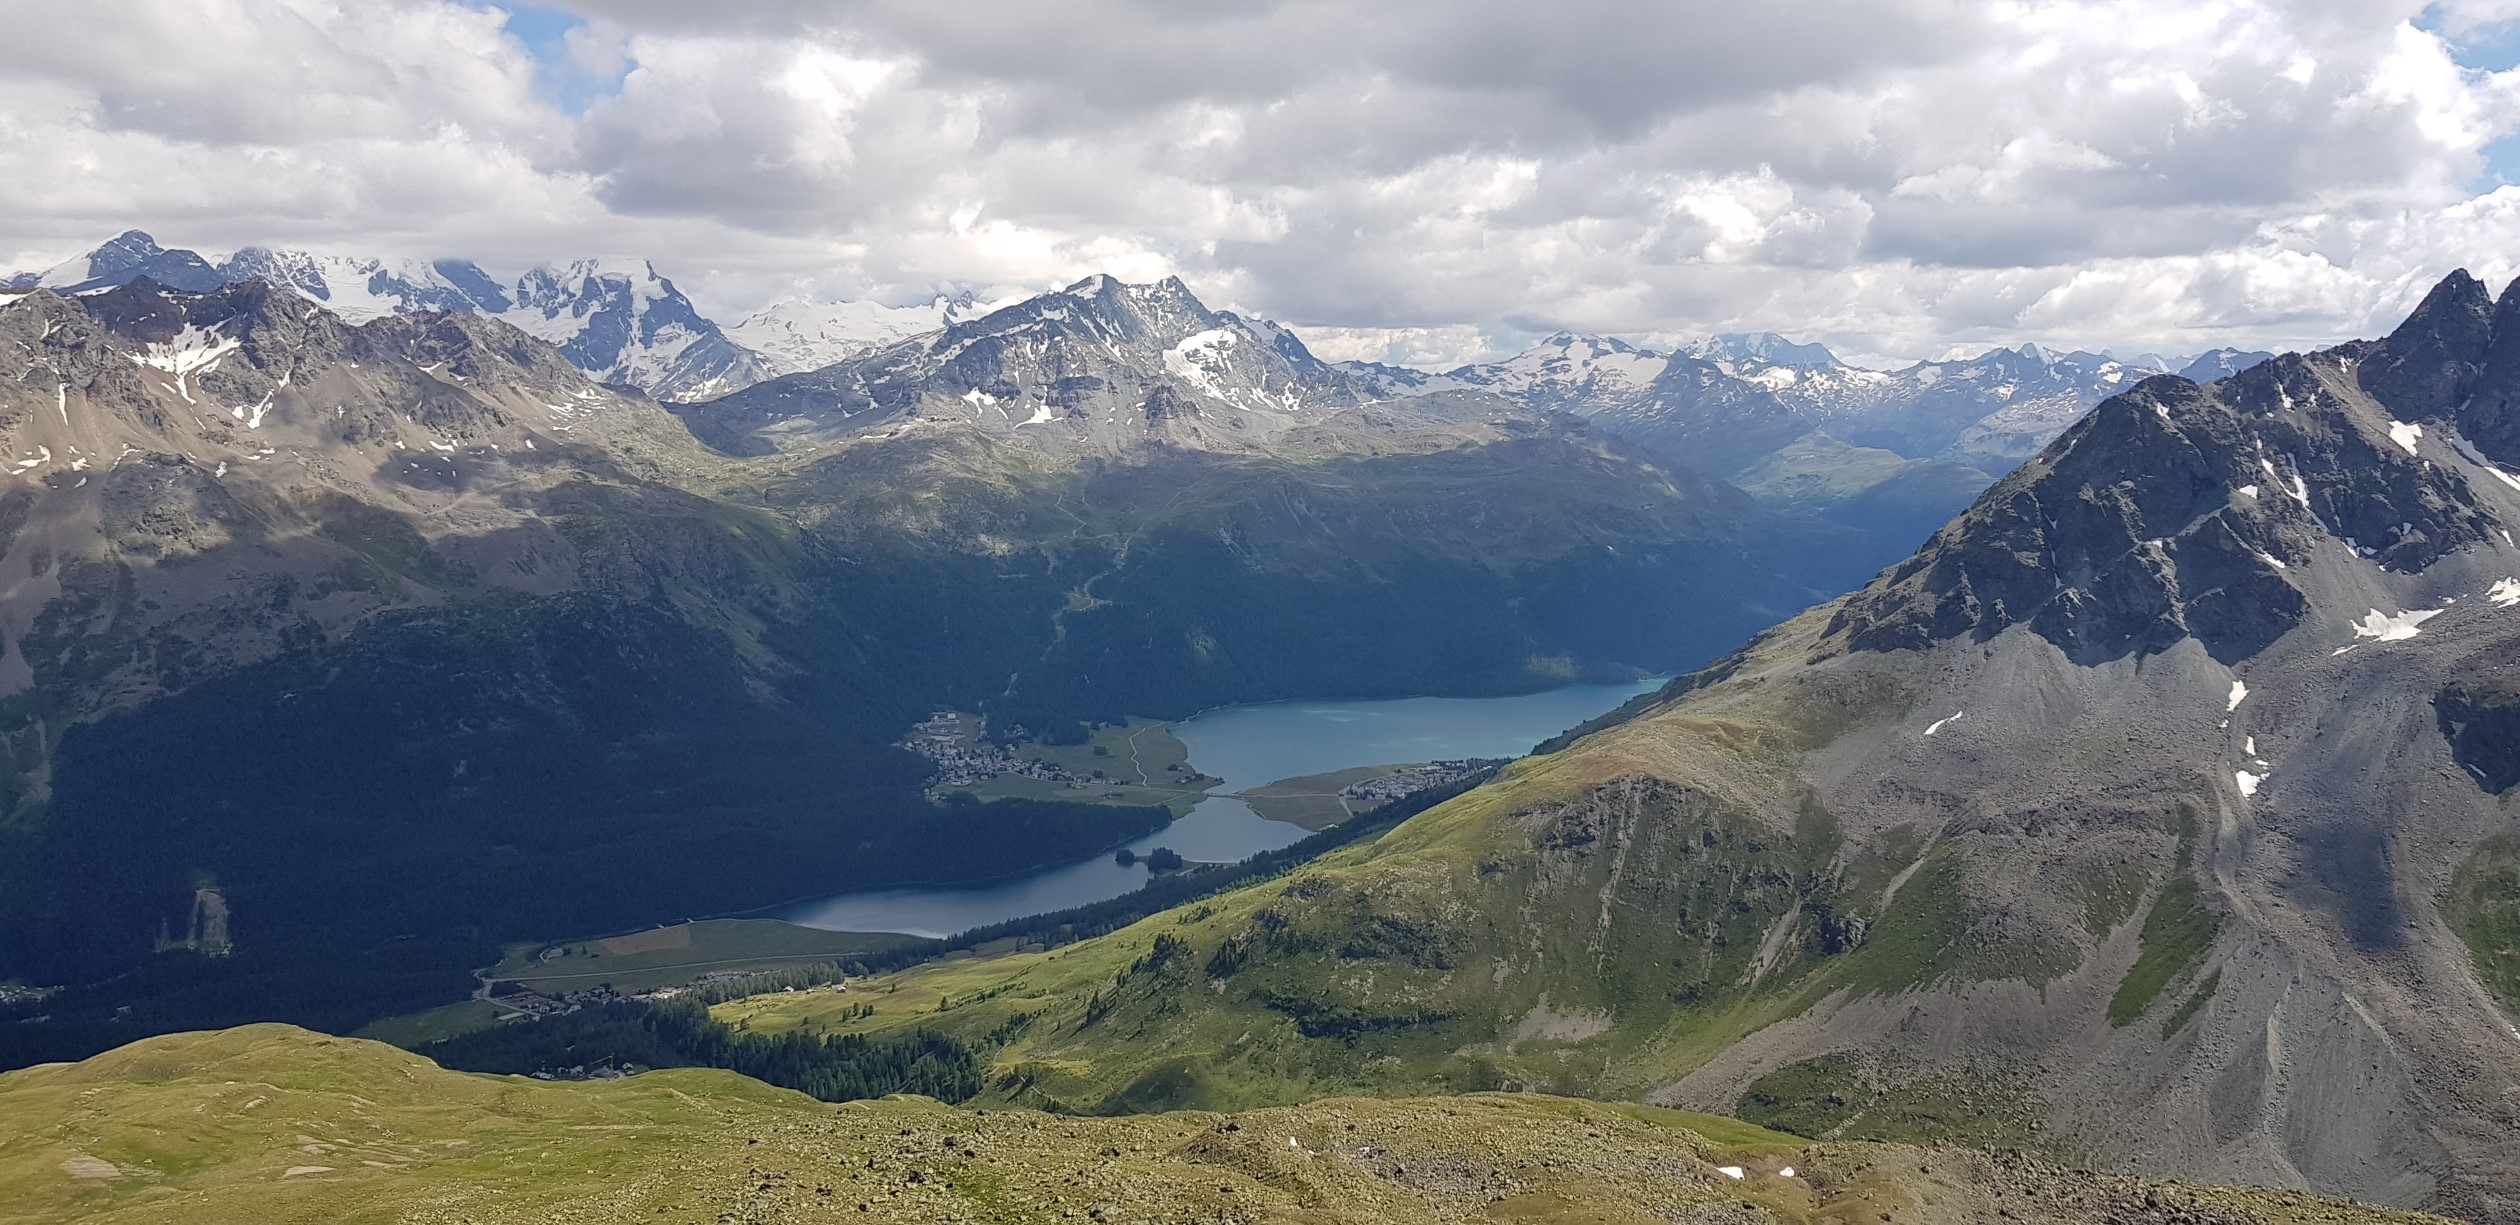 Engadine, St. Moritz, Piz Nair, view in direction Corvatsch with Lej da Champfer and Lake Silvaplana